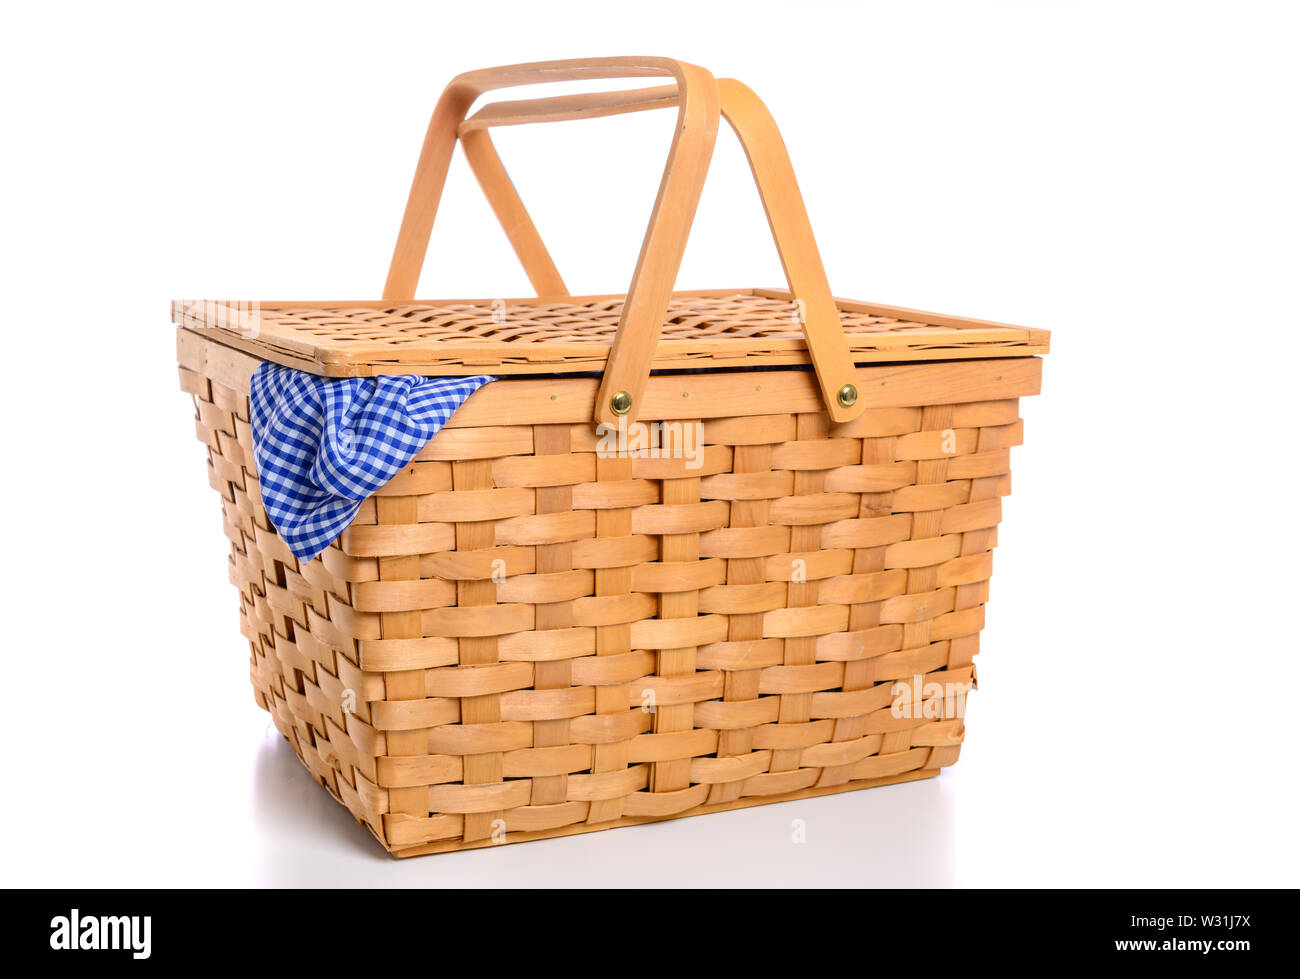 A brown wicker picnic basket on a white background with gingham cloth Stock Photo